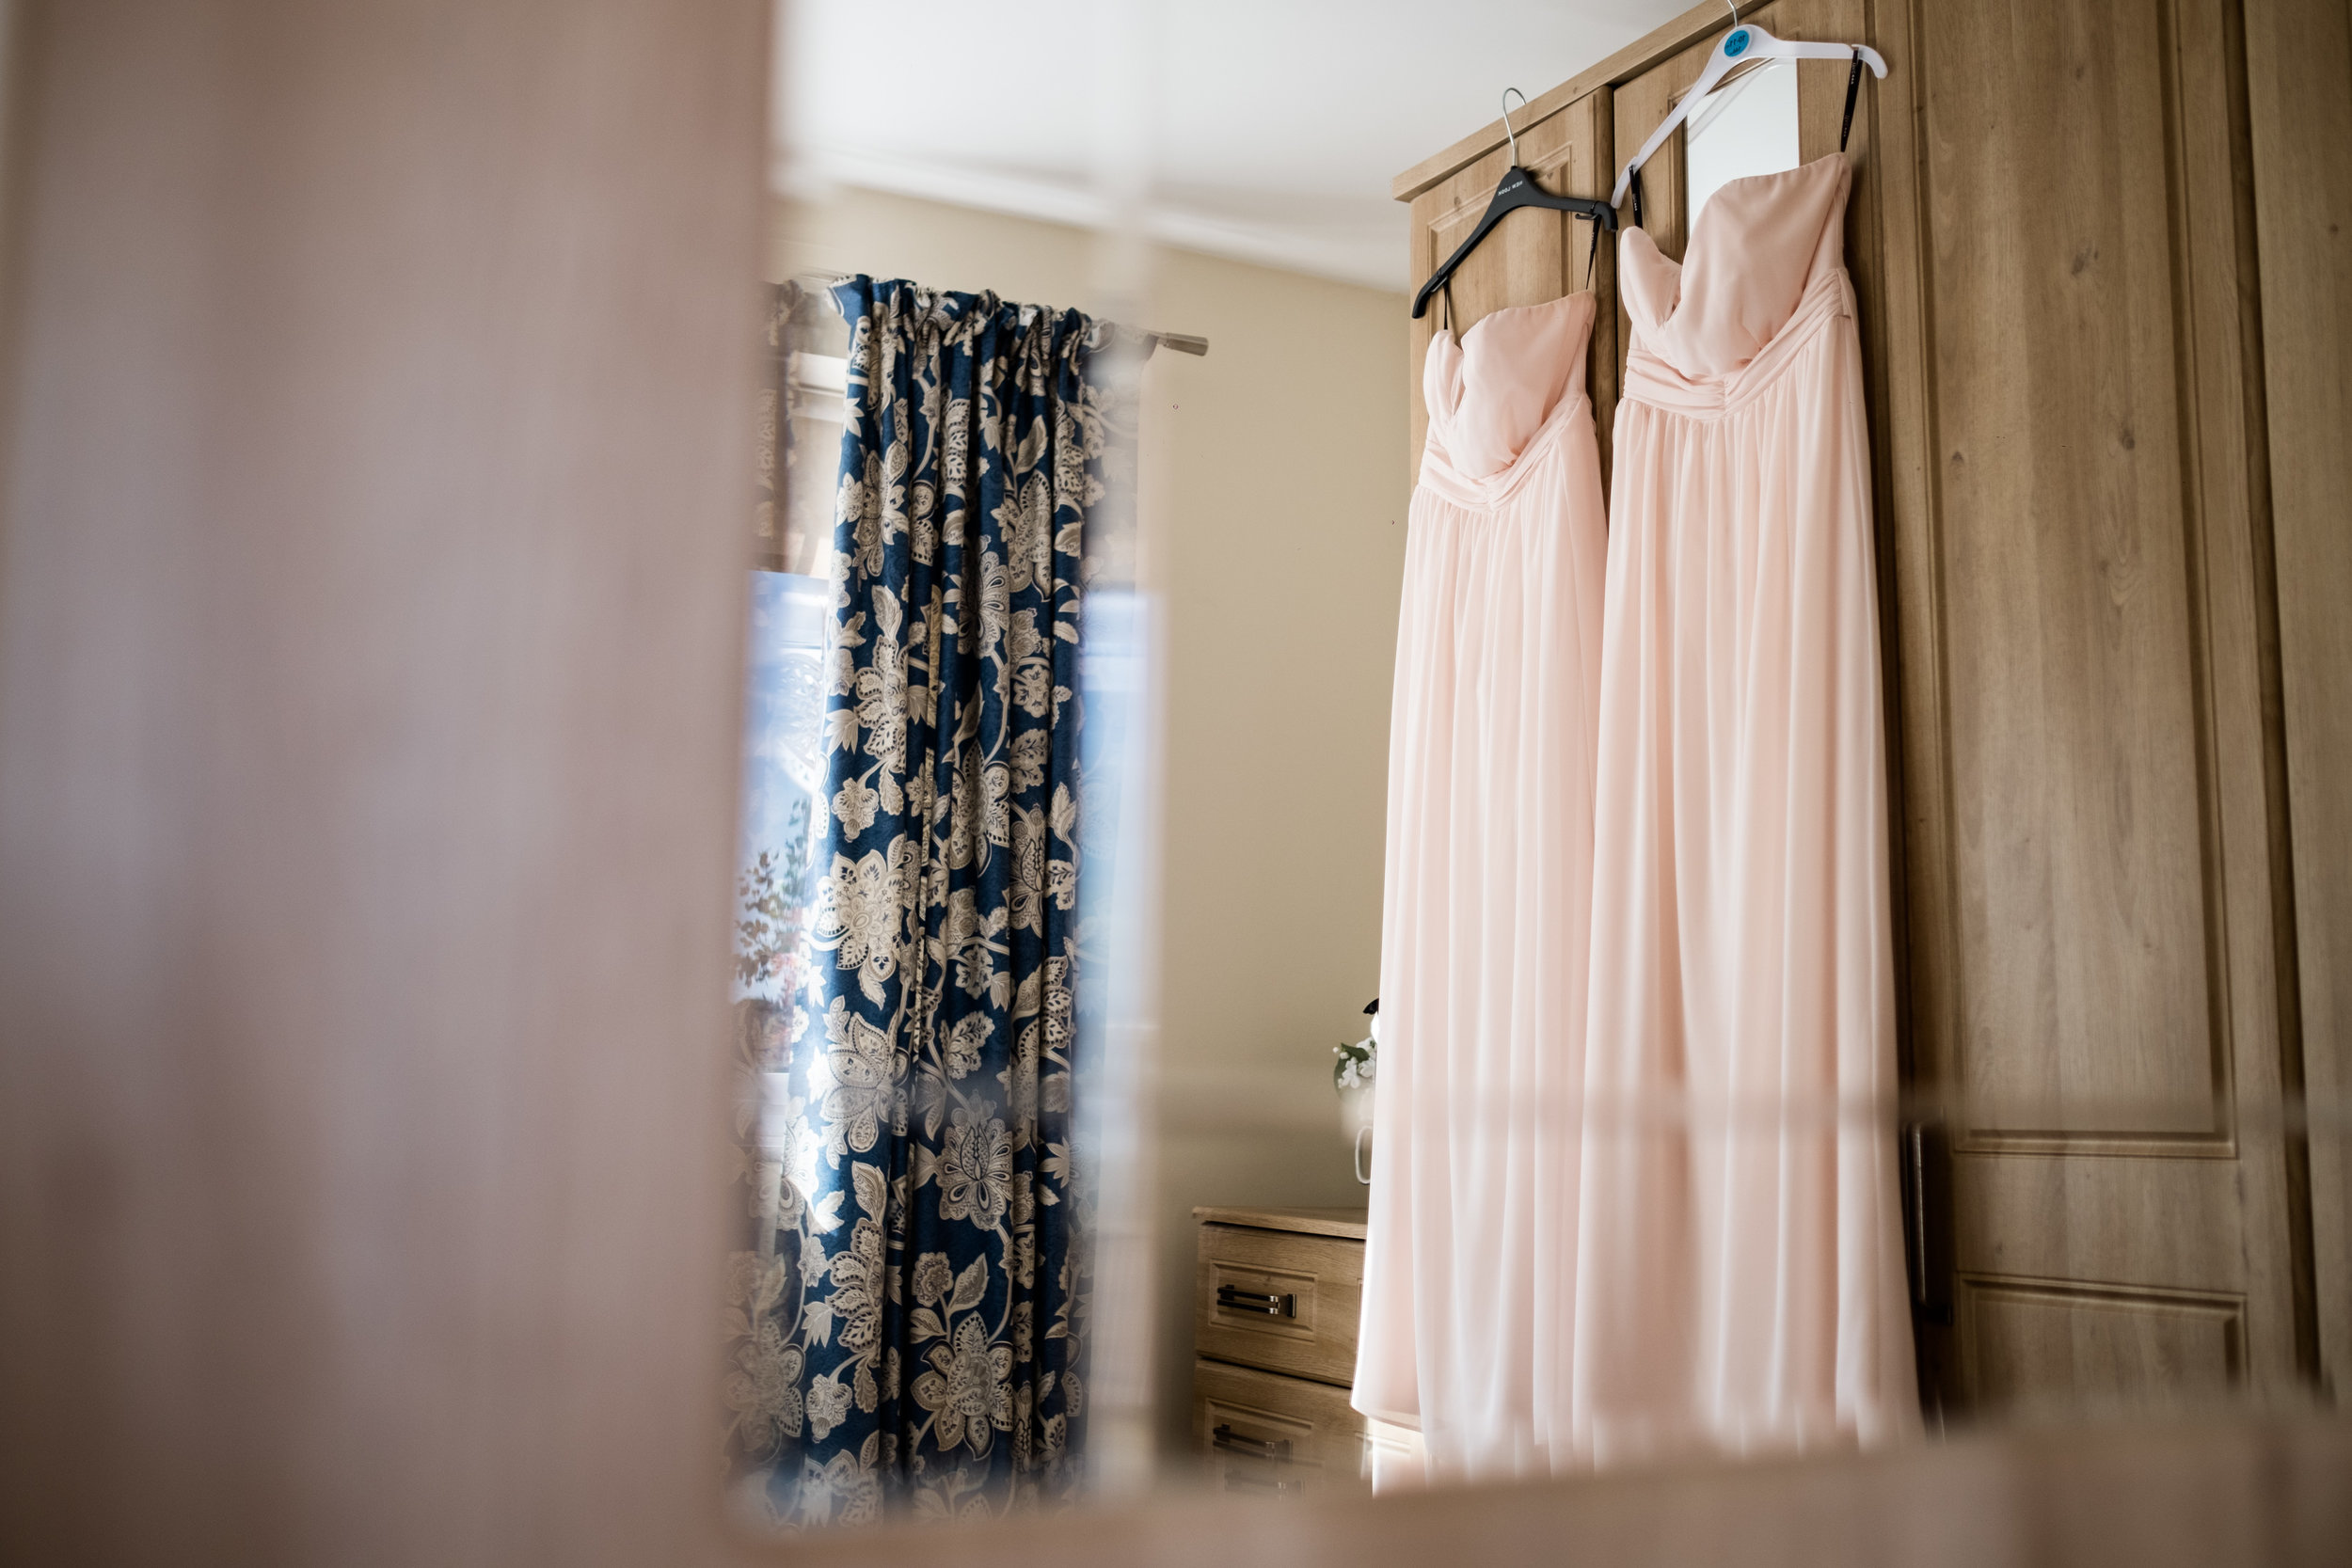 Summer Staffordshire Wedding Photography at The Manor, Cheadle - Jenny Harper-3.jpg